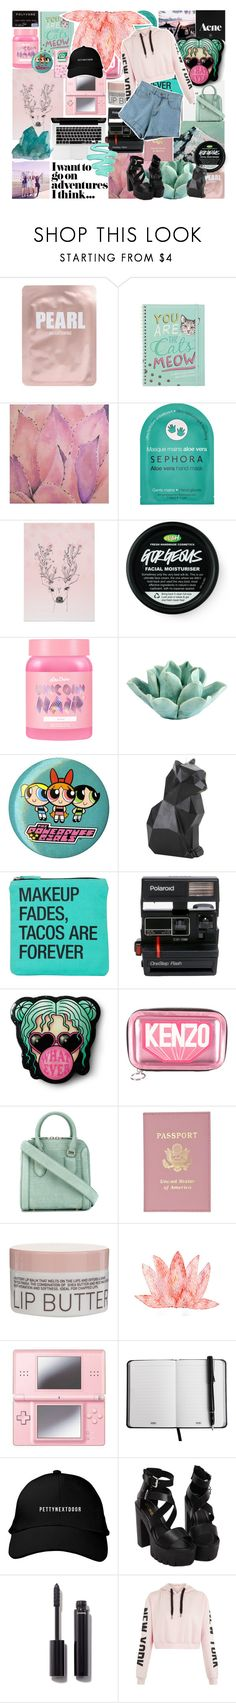 """""""GODDESS"""" by skittlebum ❤ liked on Polyvore featuring Lapcos, Ren-Wil, Sephora Collection, Lime Crime, HomArt, Hot Topic, Mormor, About Face Designs, Polaroid and Kenzo"""